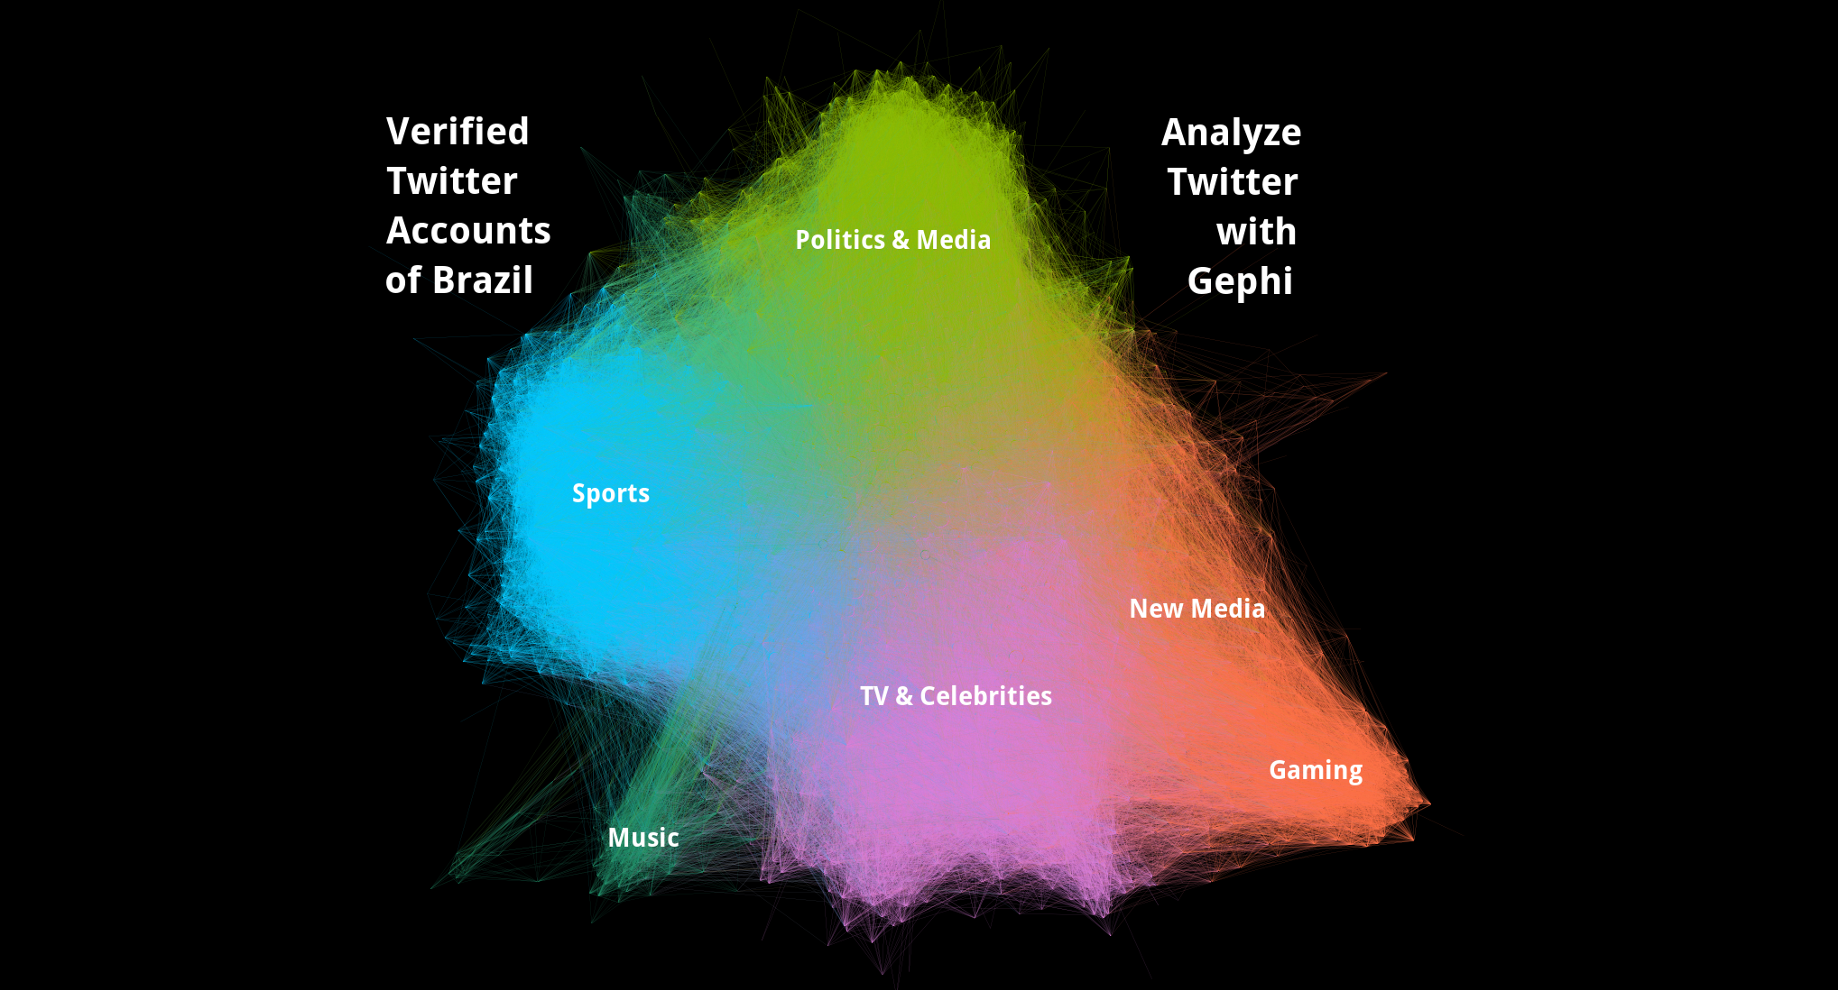 Guide: Analyzing Twitter Networks with Gephi 0 9 1 - Luca Hammer